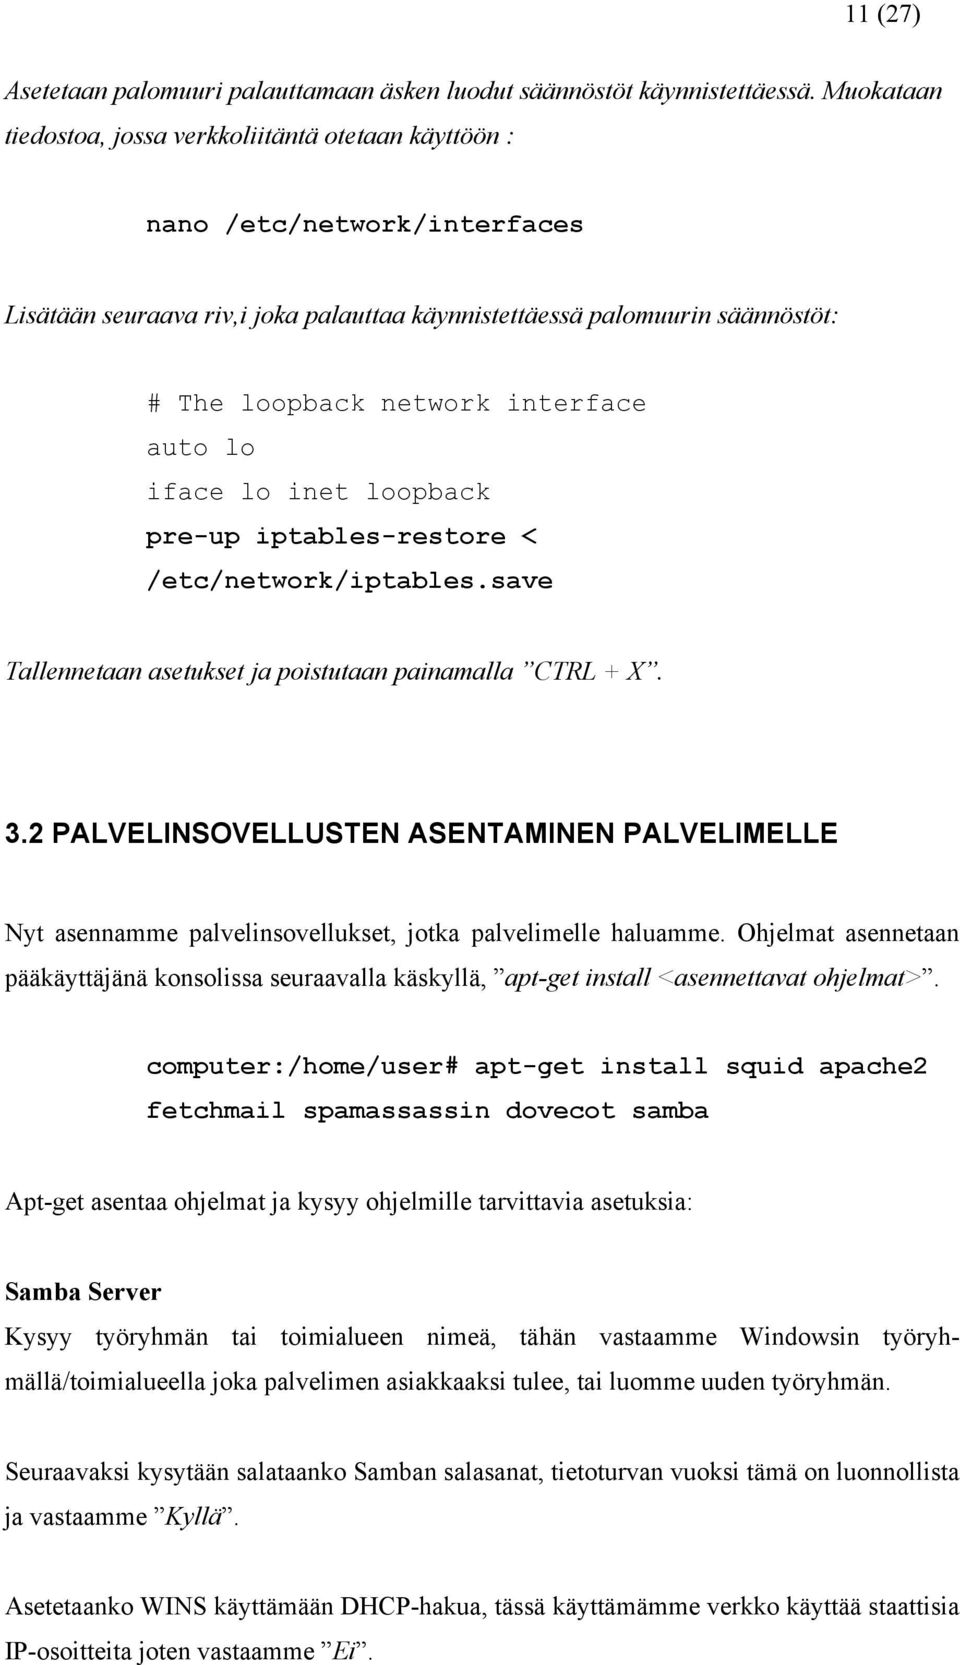 interface auto lo iface lo inet loopback pre-up iptables-restore < /etc/network/iptables.save Tallennetaan asetukset ja poistutaan painamalla CTRL + X. 3.